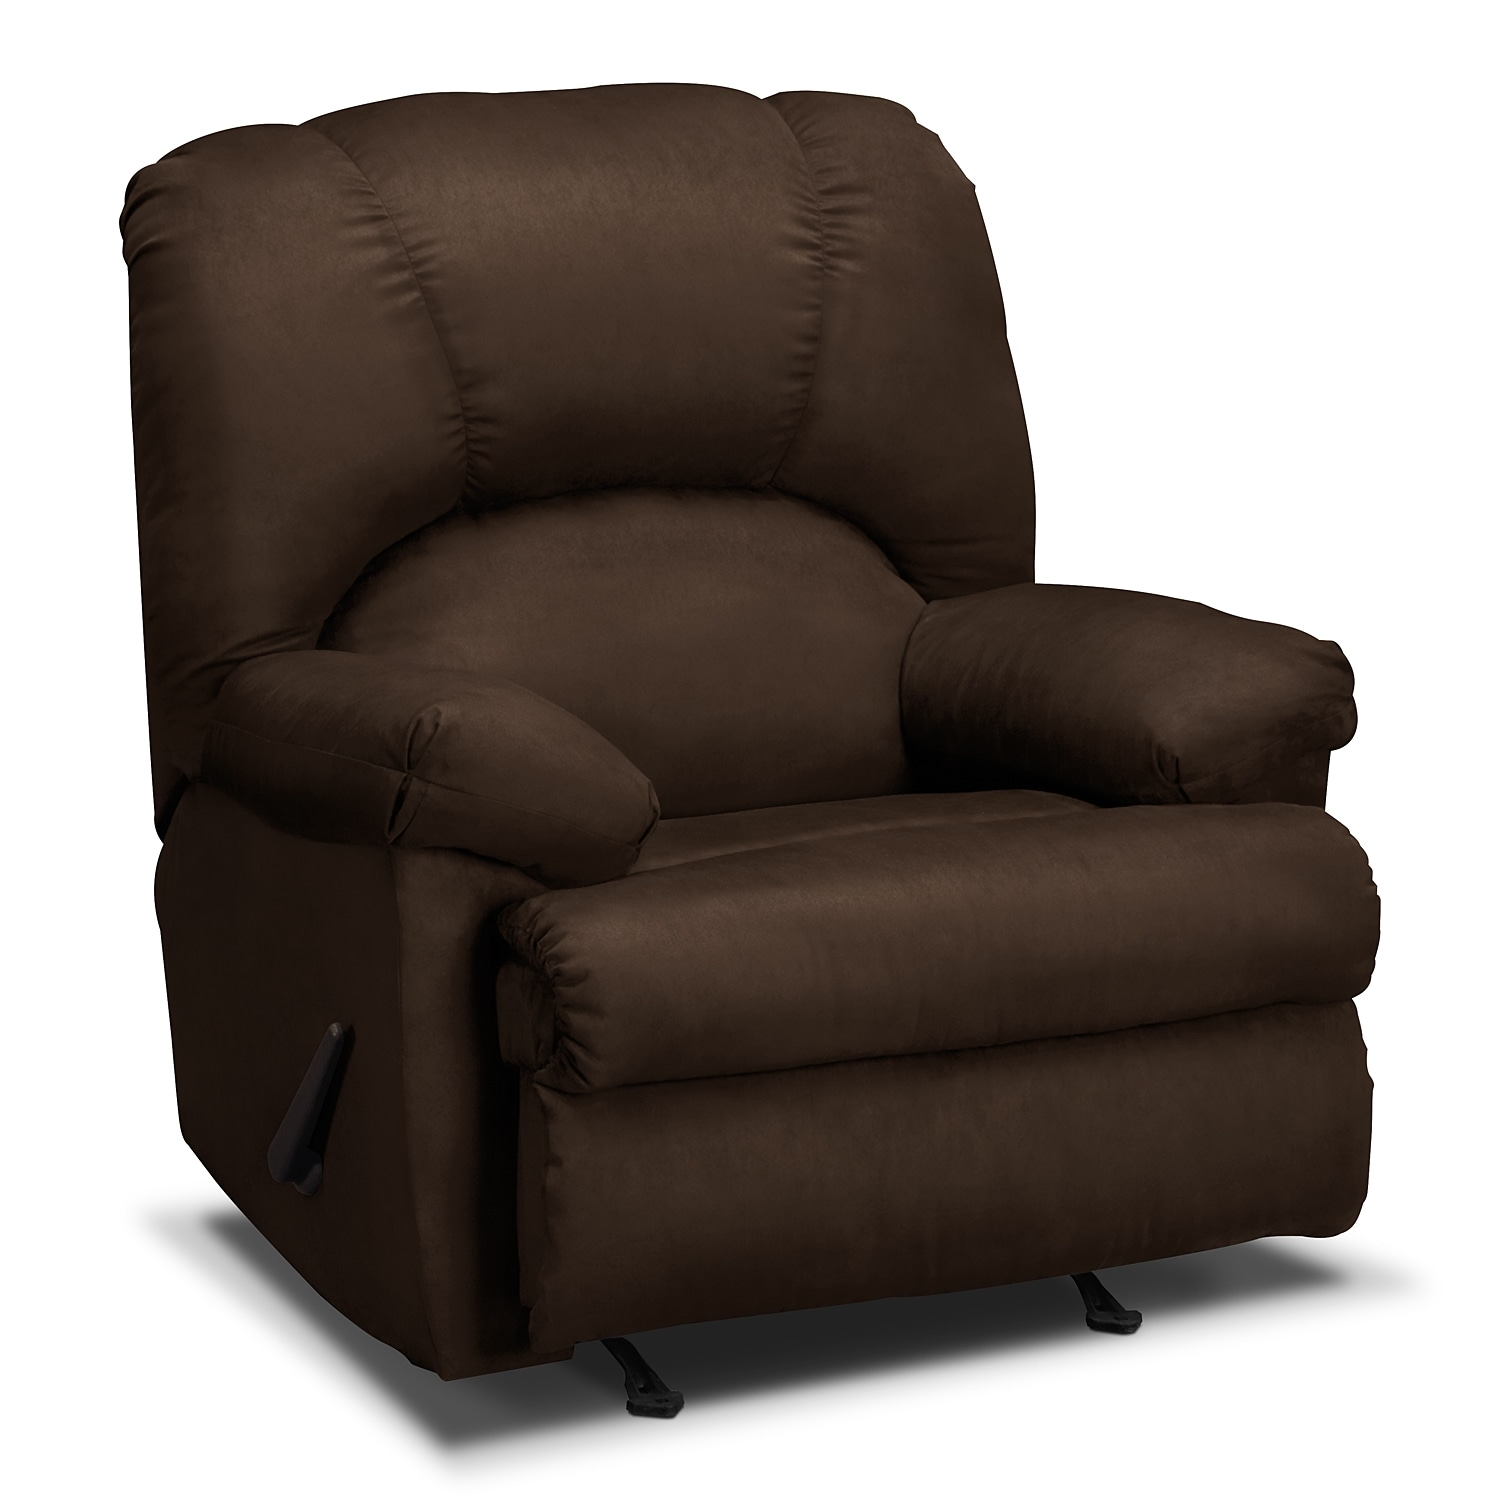 Value City Furniture Clearance Center: Quincy Rocker Recliner - Chocolate